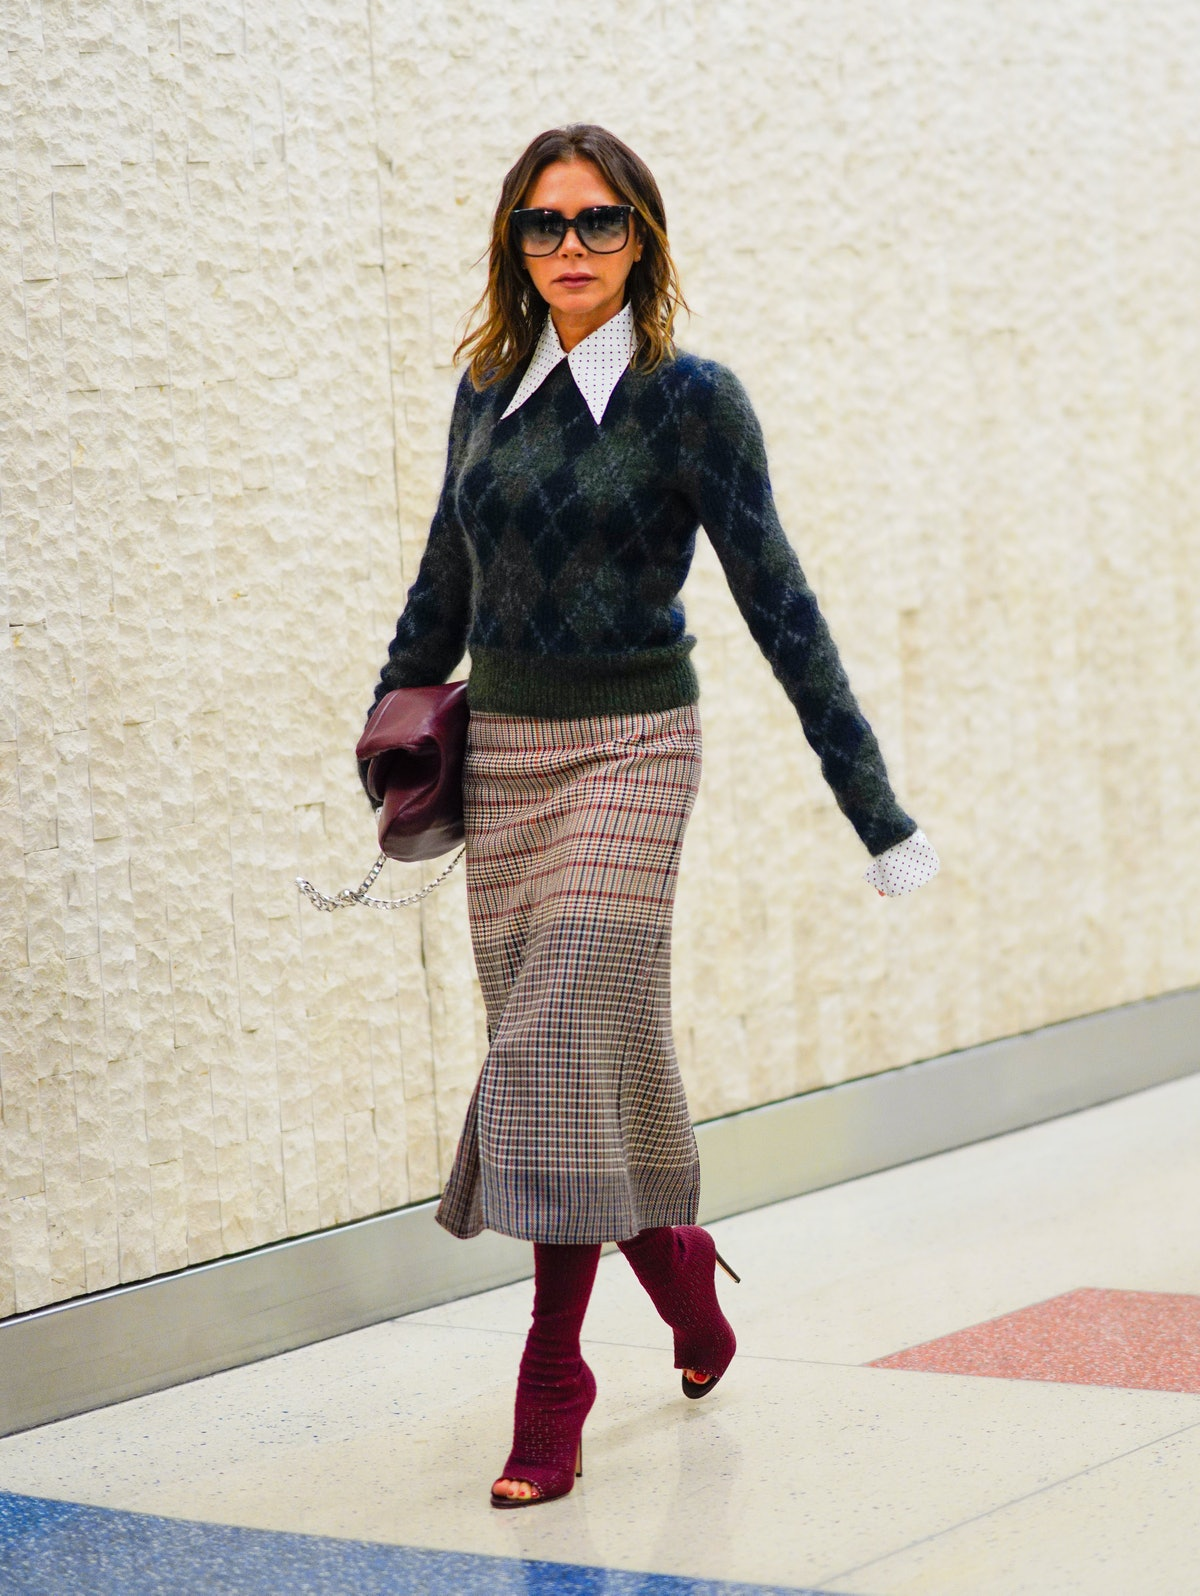 Victoria Beckham showing off her style